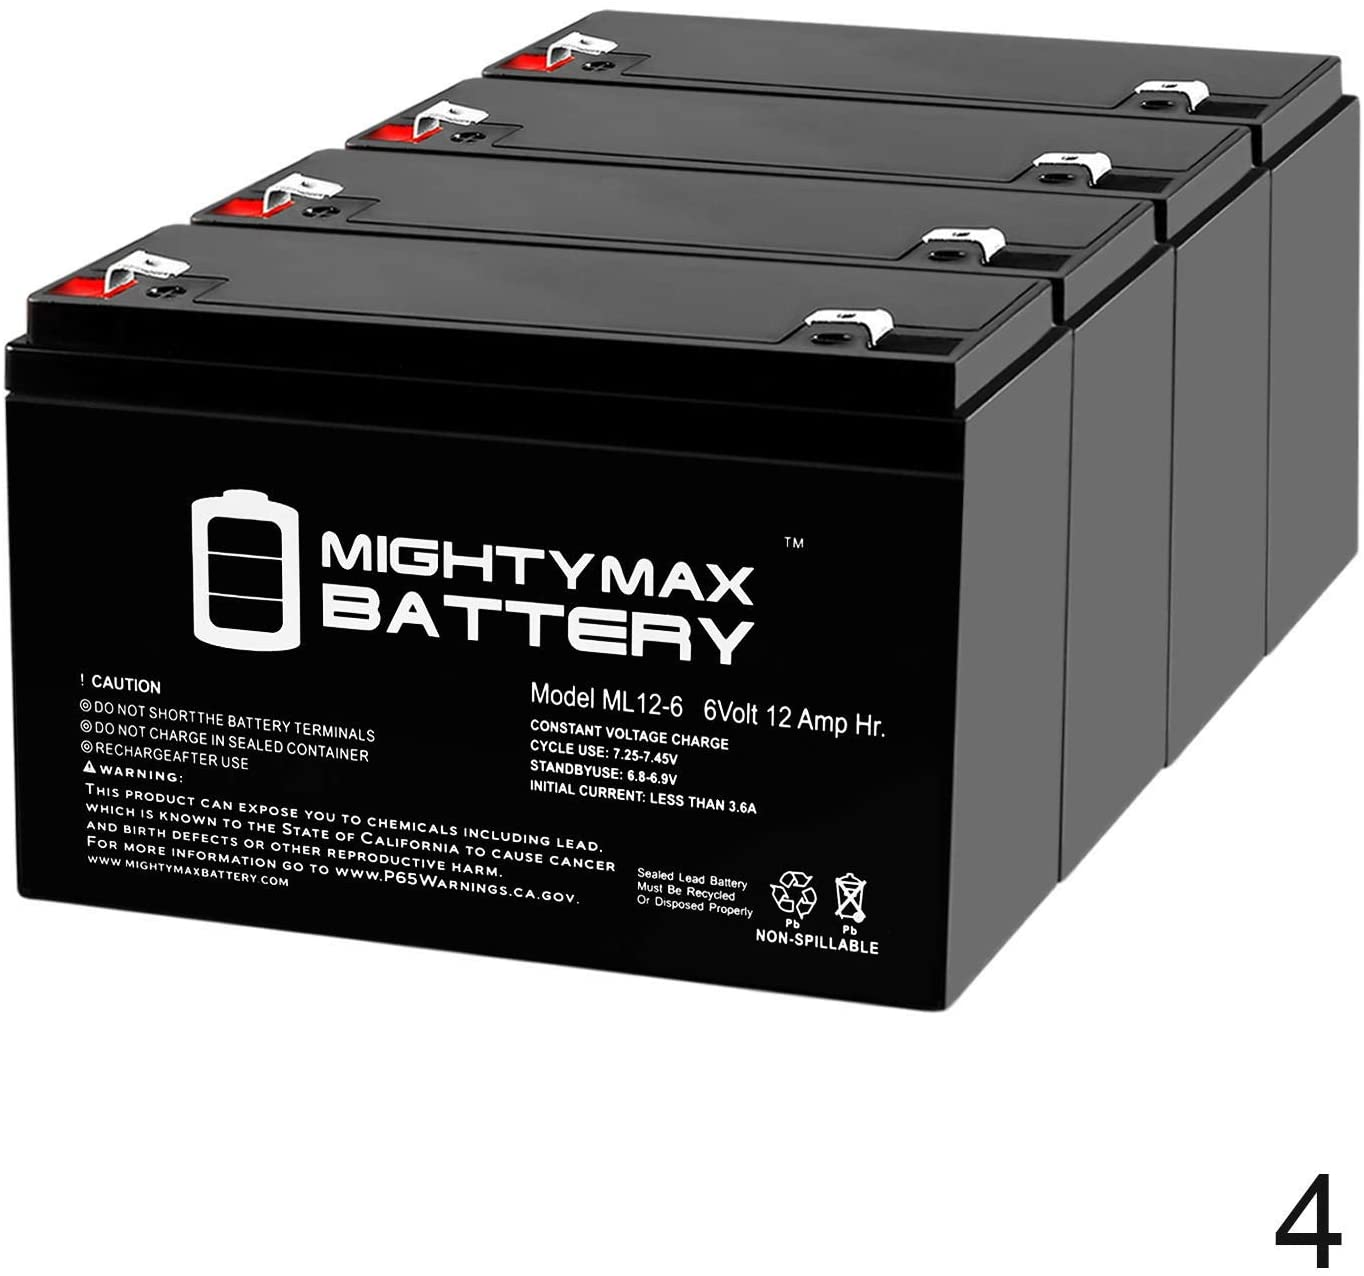 Mighty Max Battery 6V 12AH F2 SLA Replacement Battery for NP8-6 NPX-50-4 Pack Brand Product